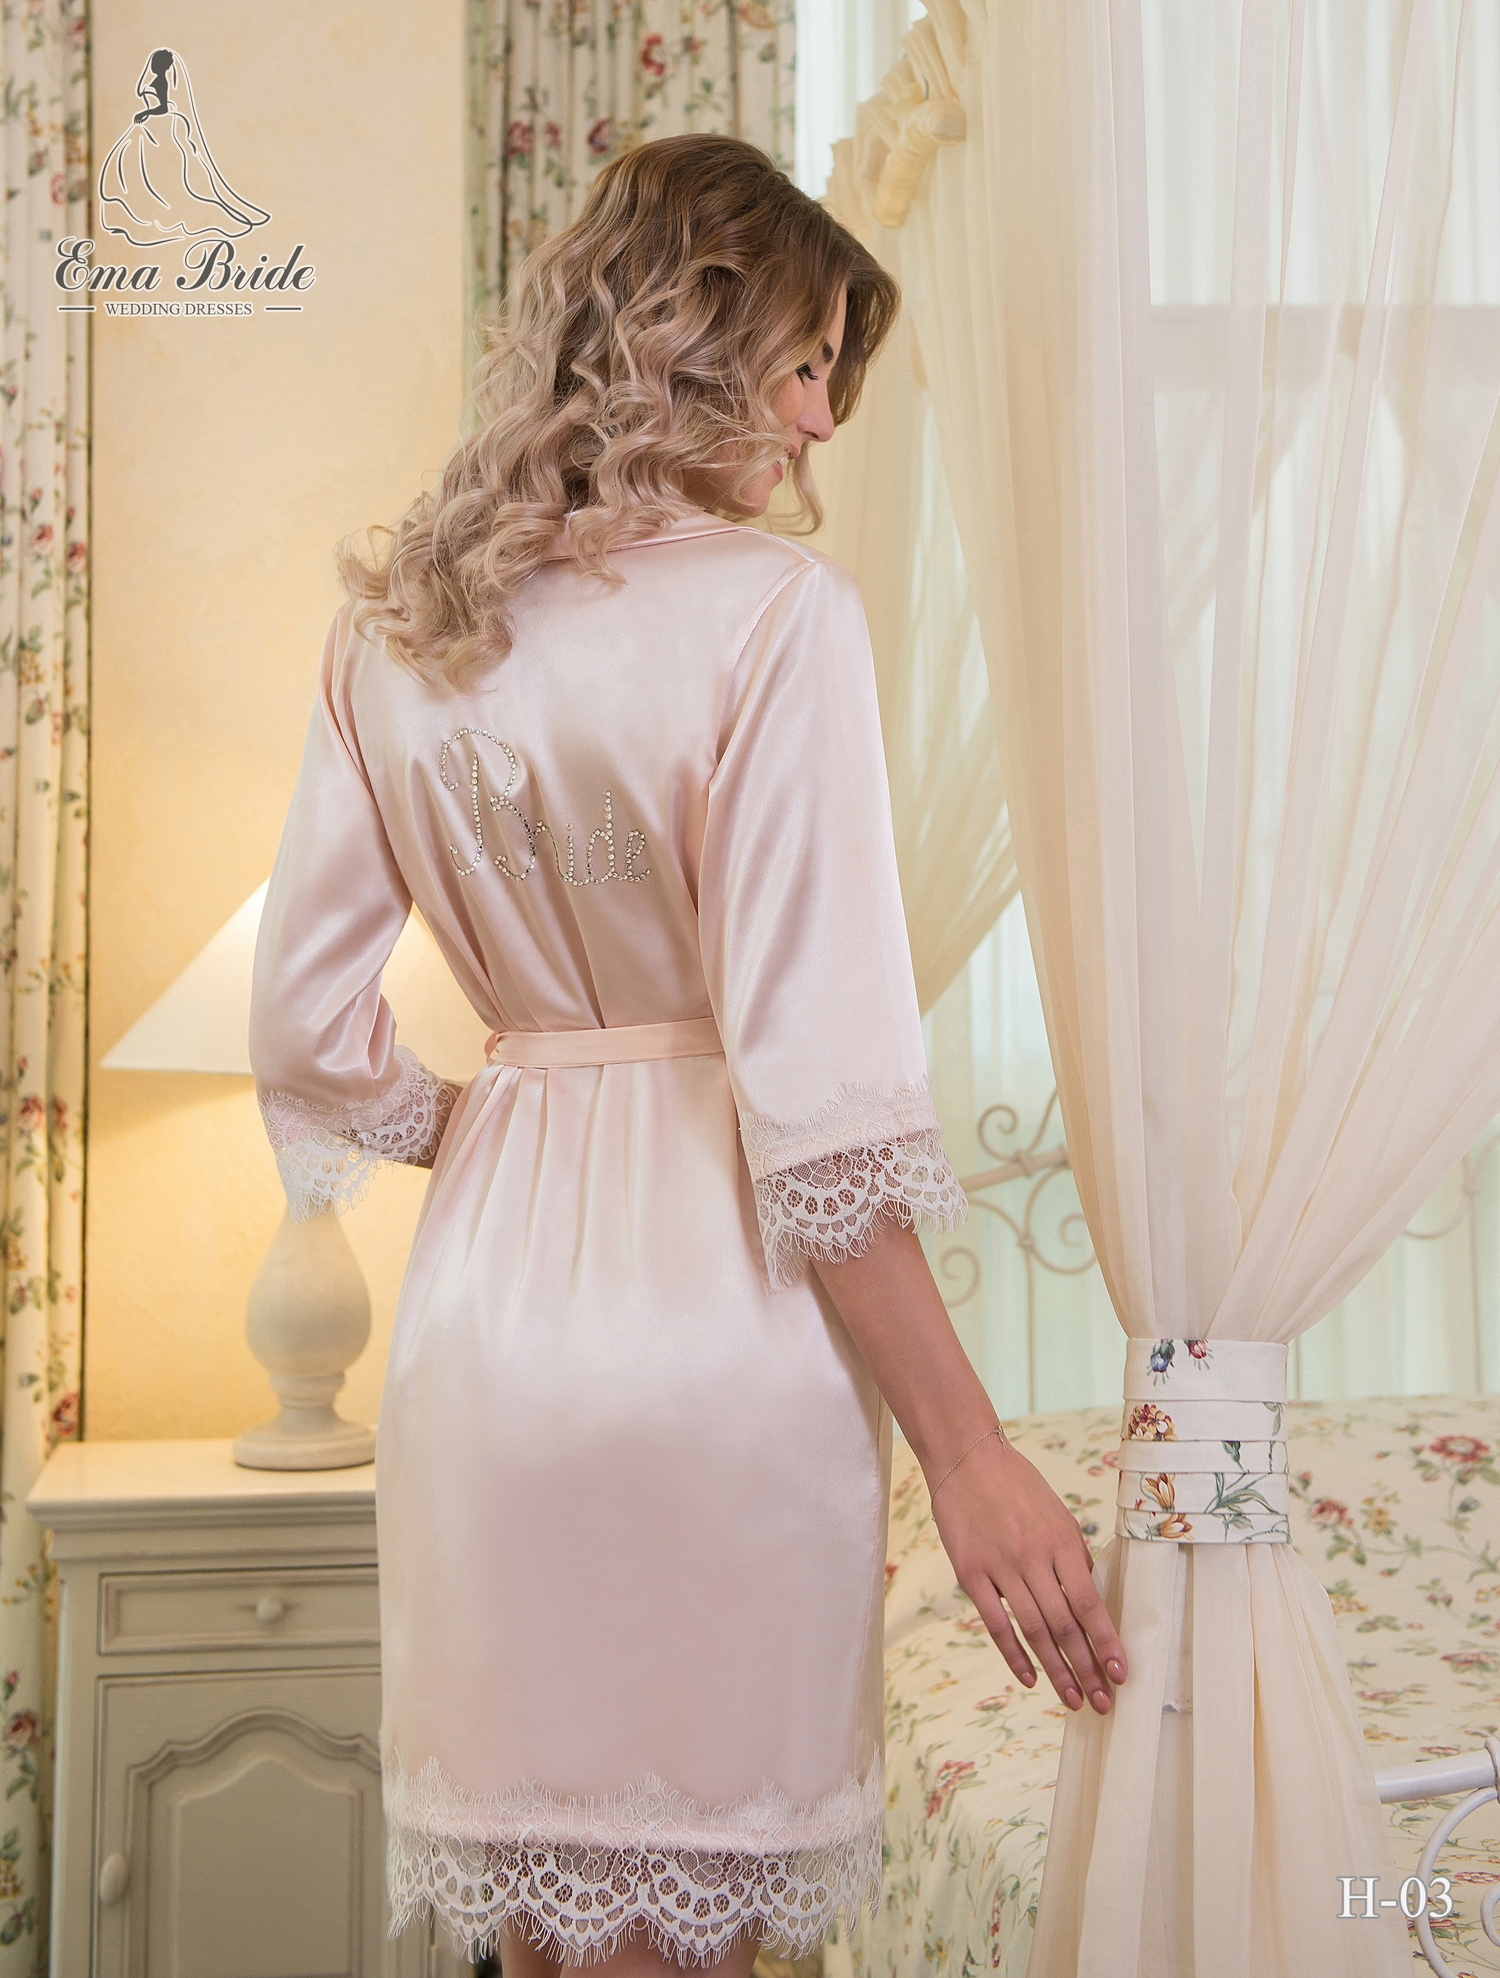 Satin peignoir for a bride-1